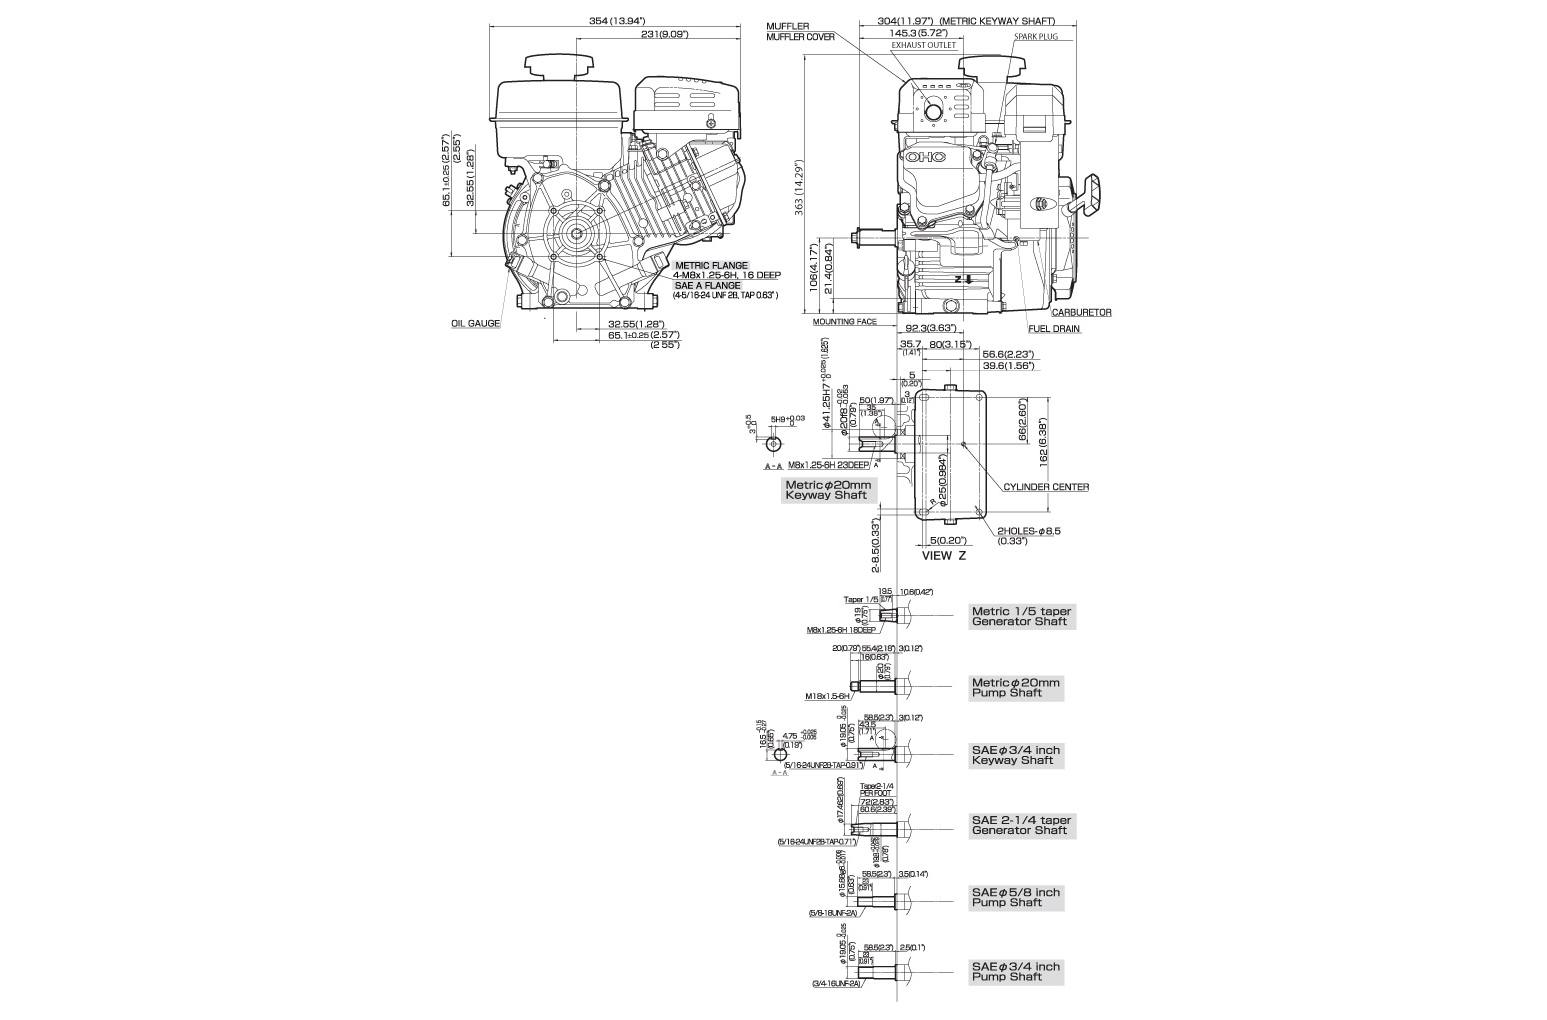 robin subaru engine diagram 0 suavvqli timmarshall info \u2022 continental engine diagram robin subaru engine diagram wiring diagram rh vw2 vom winnenthal de